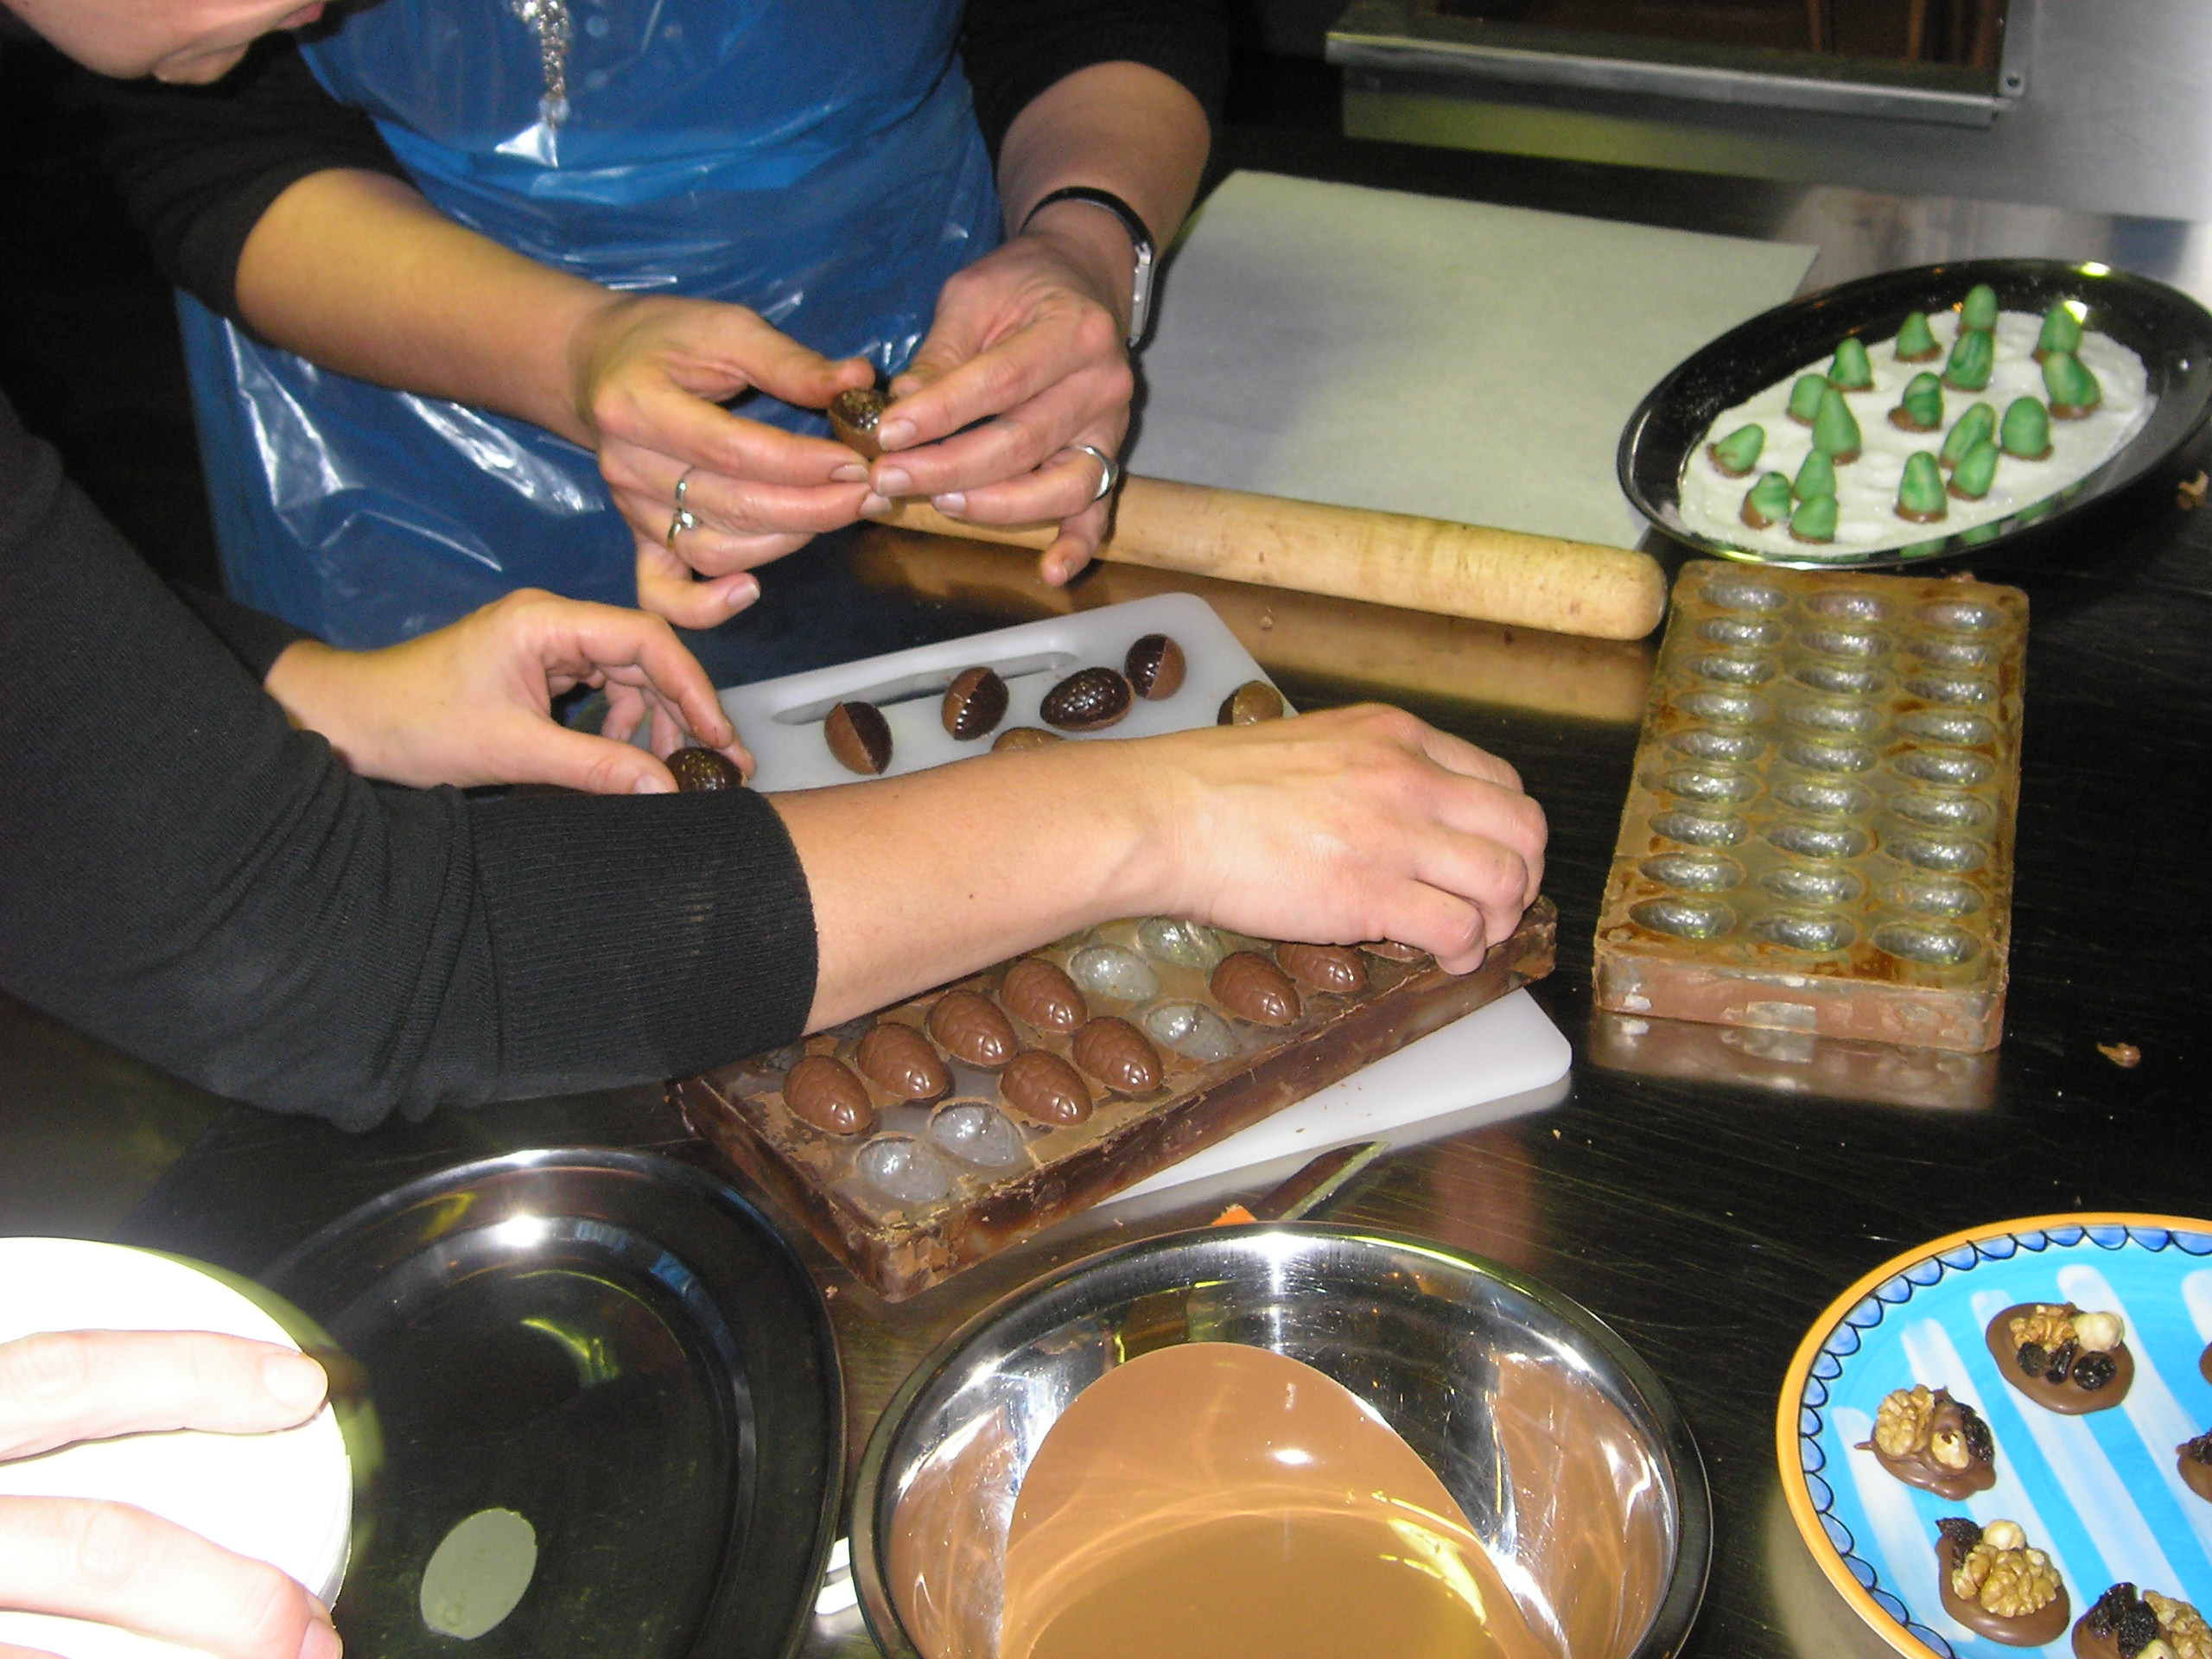 Workshop-bonbons-maken-8